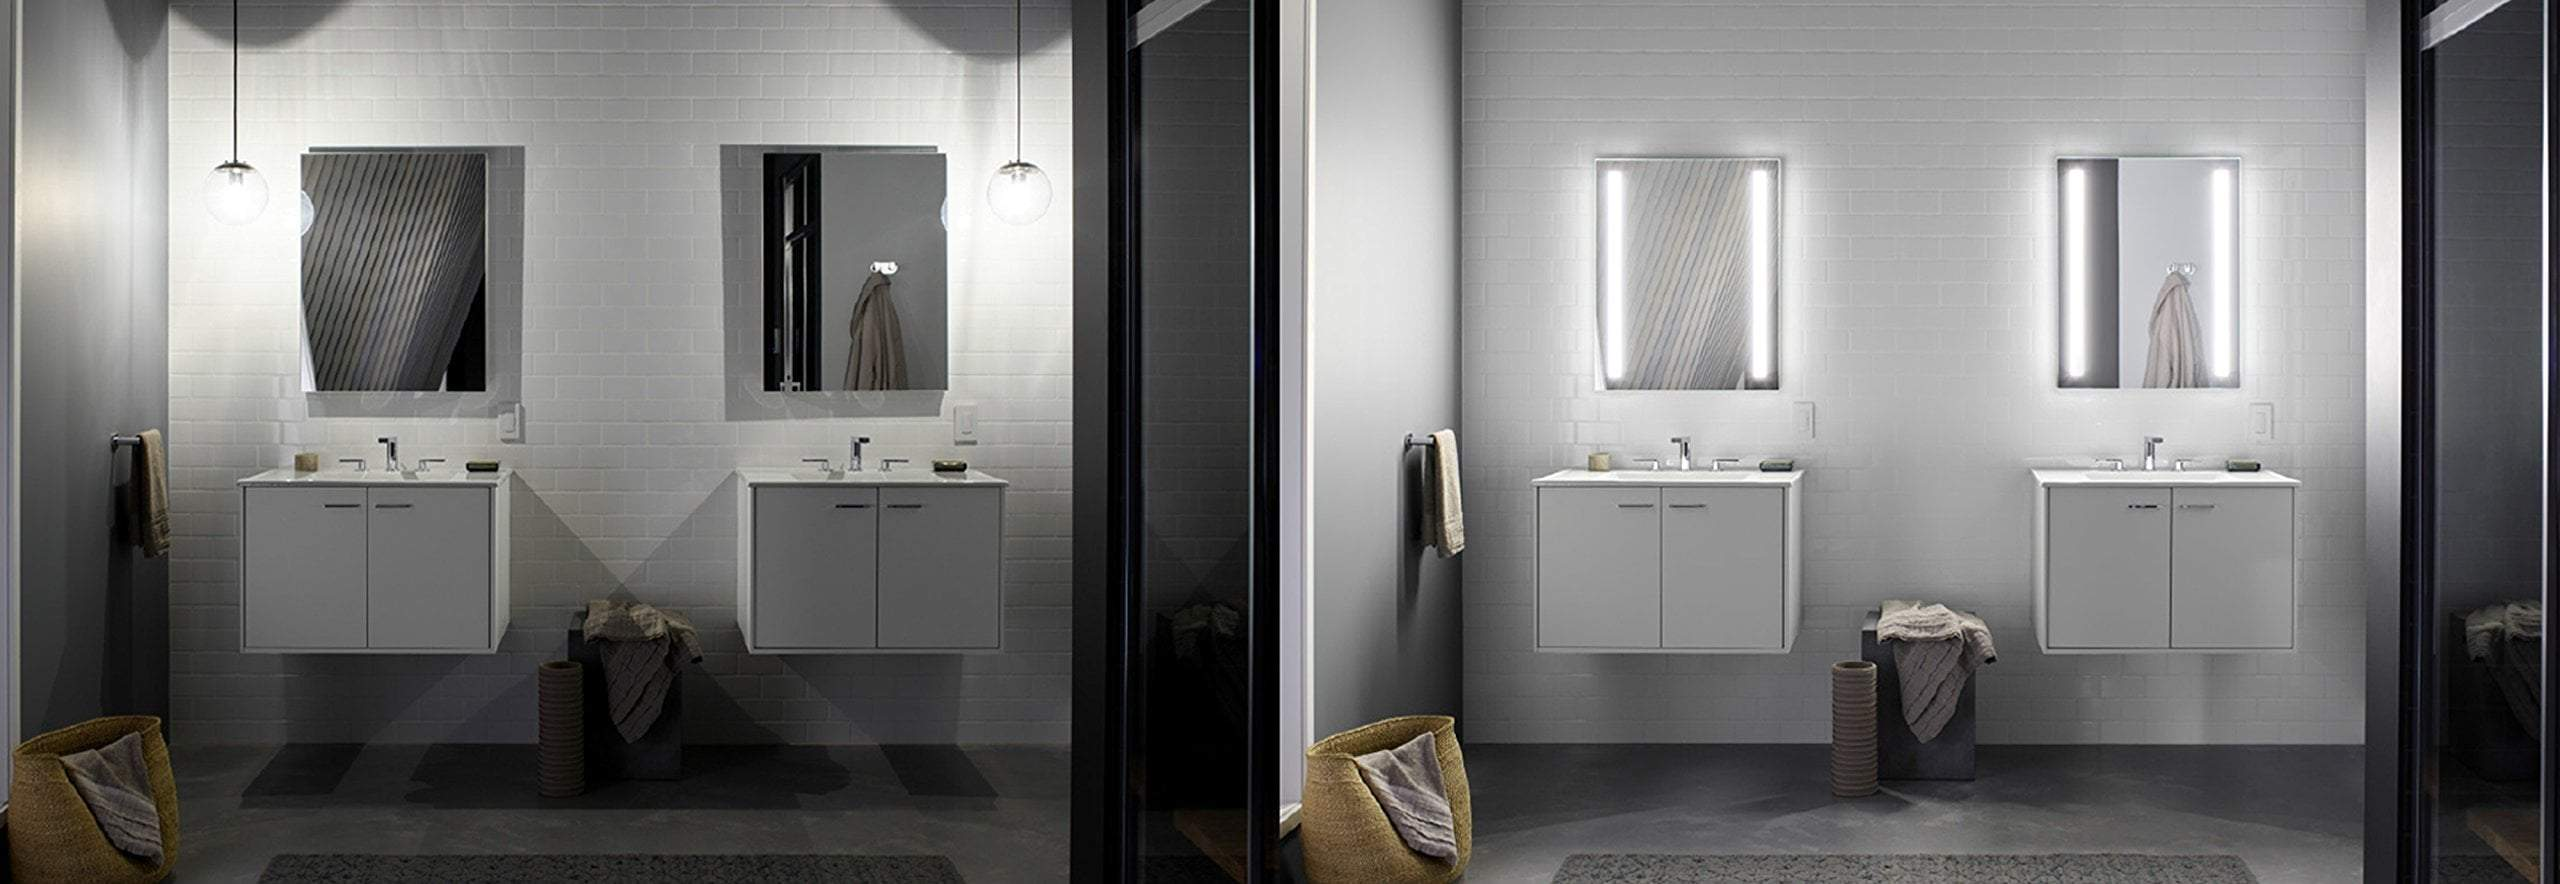 Best kohler k 99011 tl na verdera 40 inch x 30 inch led lighted bathroom medicine cabinet slow close hinge internal magnifying mirror aluminum recess or surface mount 3 doors